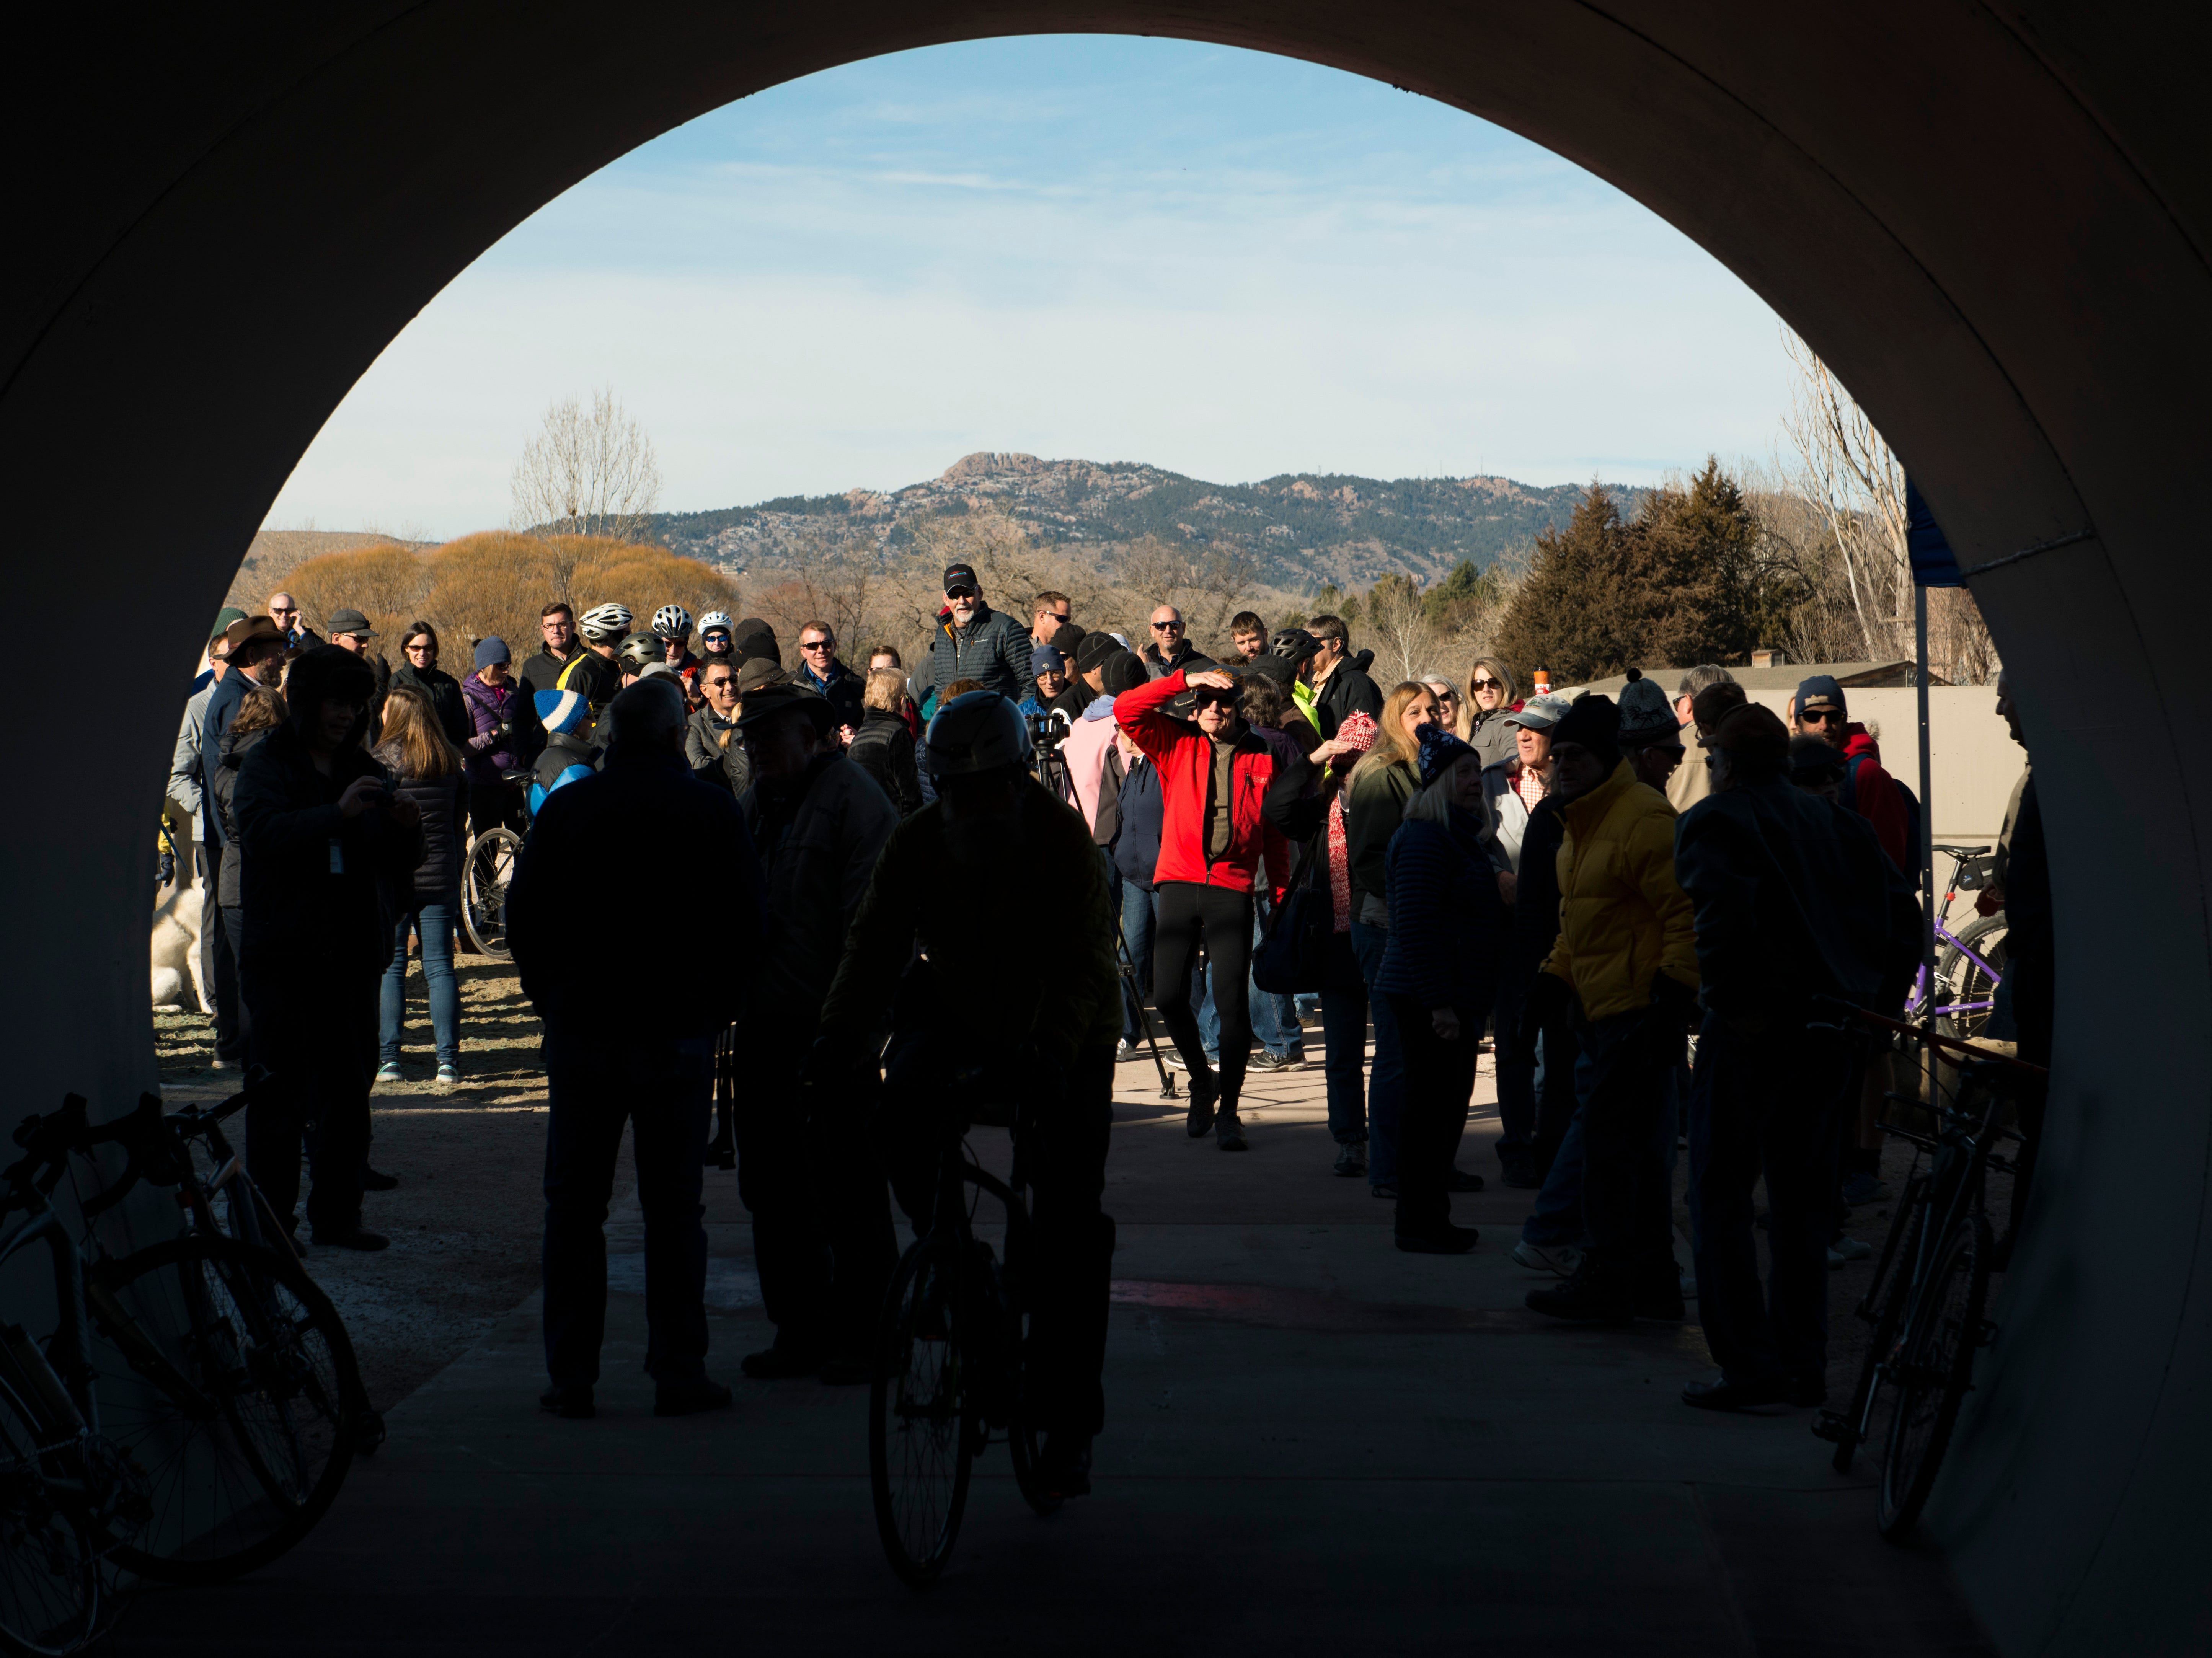 Horsetooth Rock is framed above a crowd through the new 70-foot-long Fossil Creek Trail pedestrian tunnel in south Fort Collins on Monday, December 10, 2018. The new 1.7 mile section of trail runs under the BNSF railway to connect College Avenue and Shields Street.